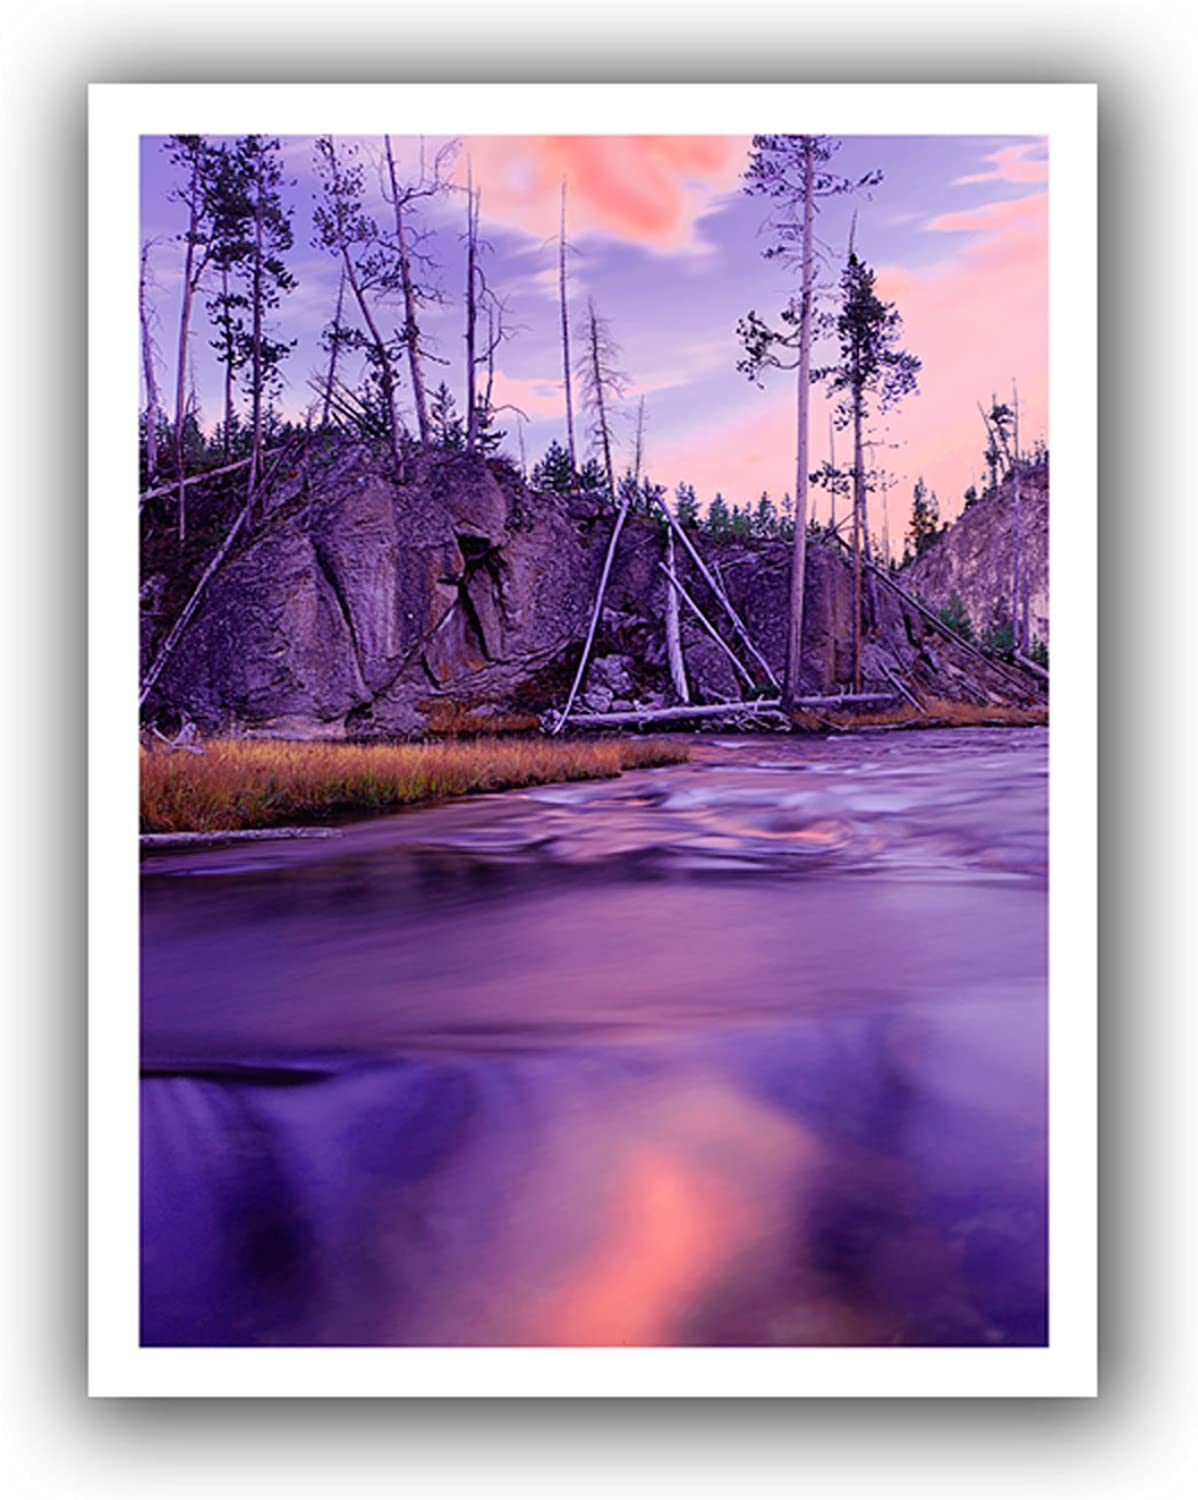 ArtWall Gibbon River Twilight Unwrapped Canvas Artwork by Dean Uhlinger, 28 by 36Inch, Holds 24 by 32Inch Image